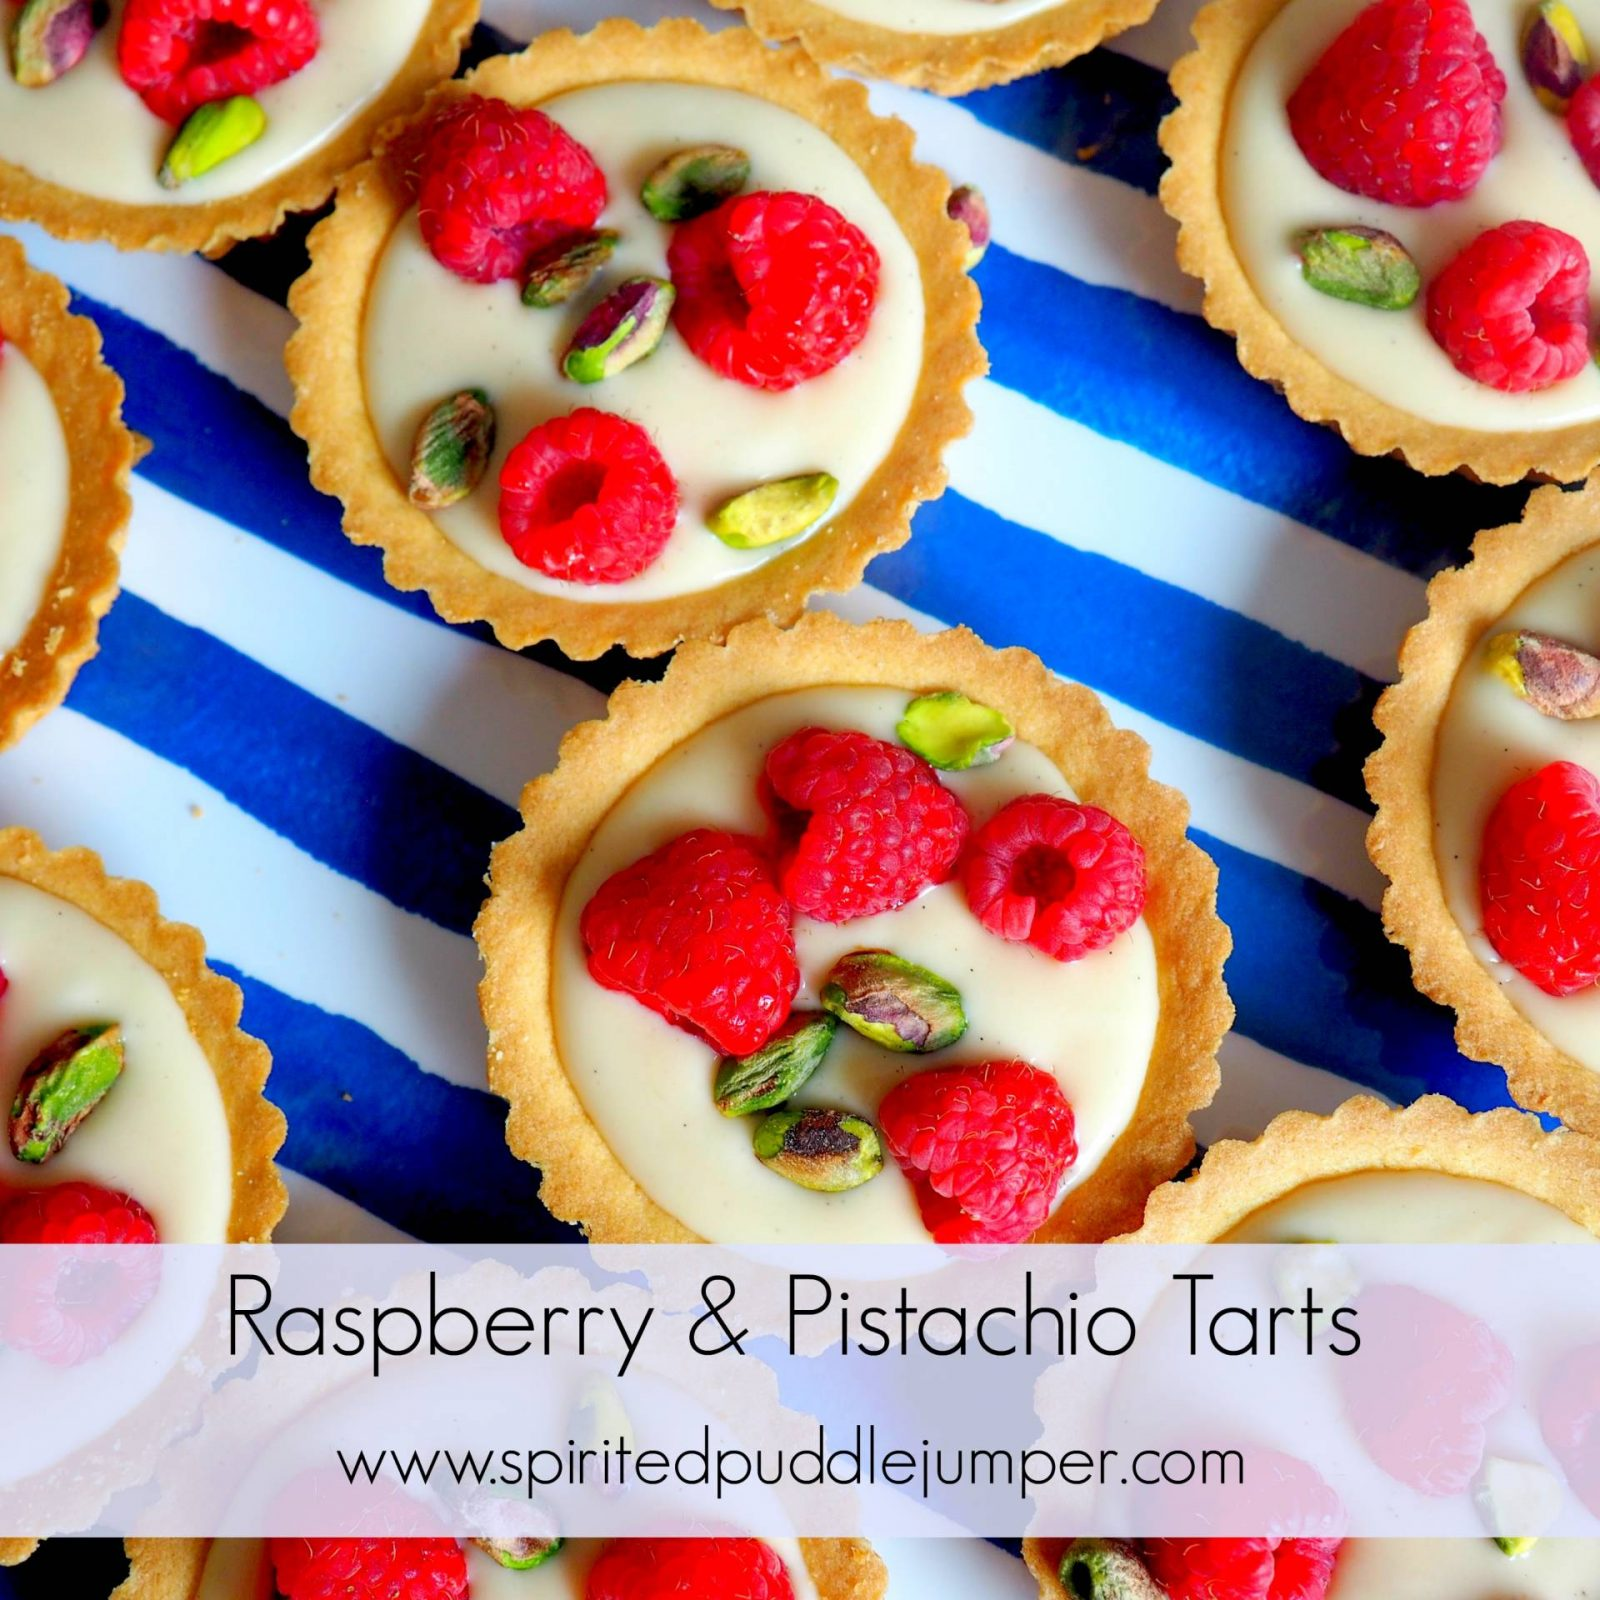 Raspberry and Pistachio Tarts